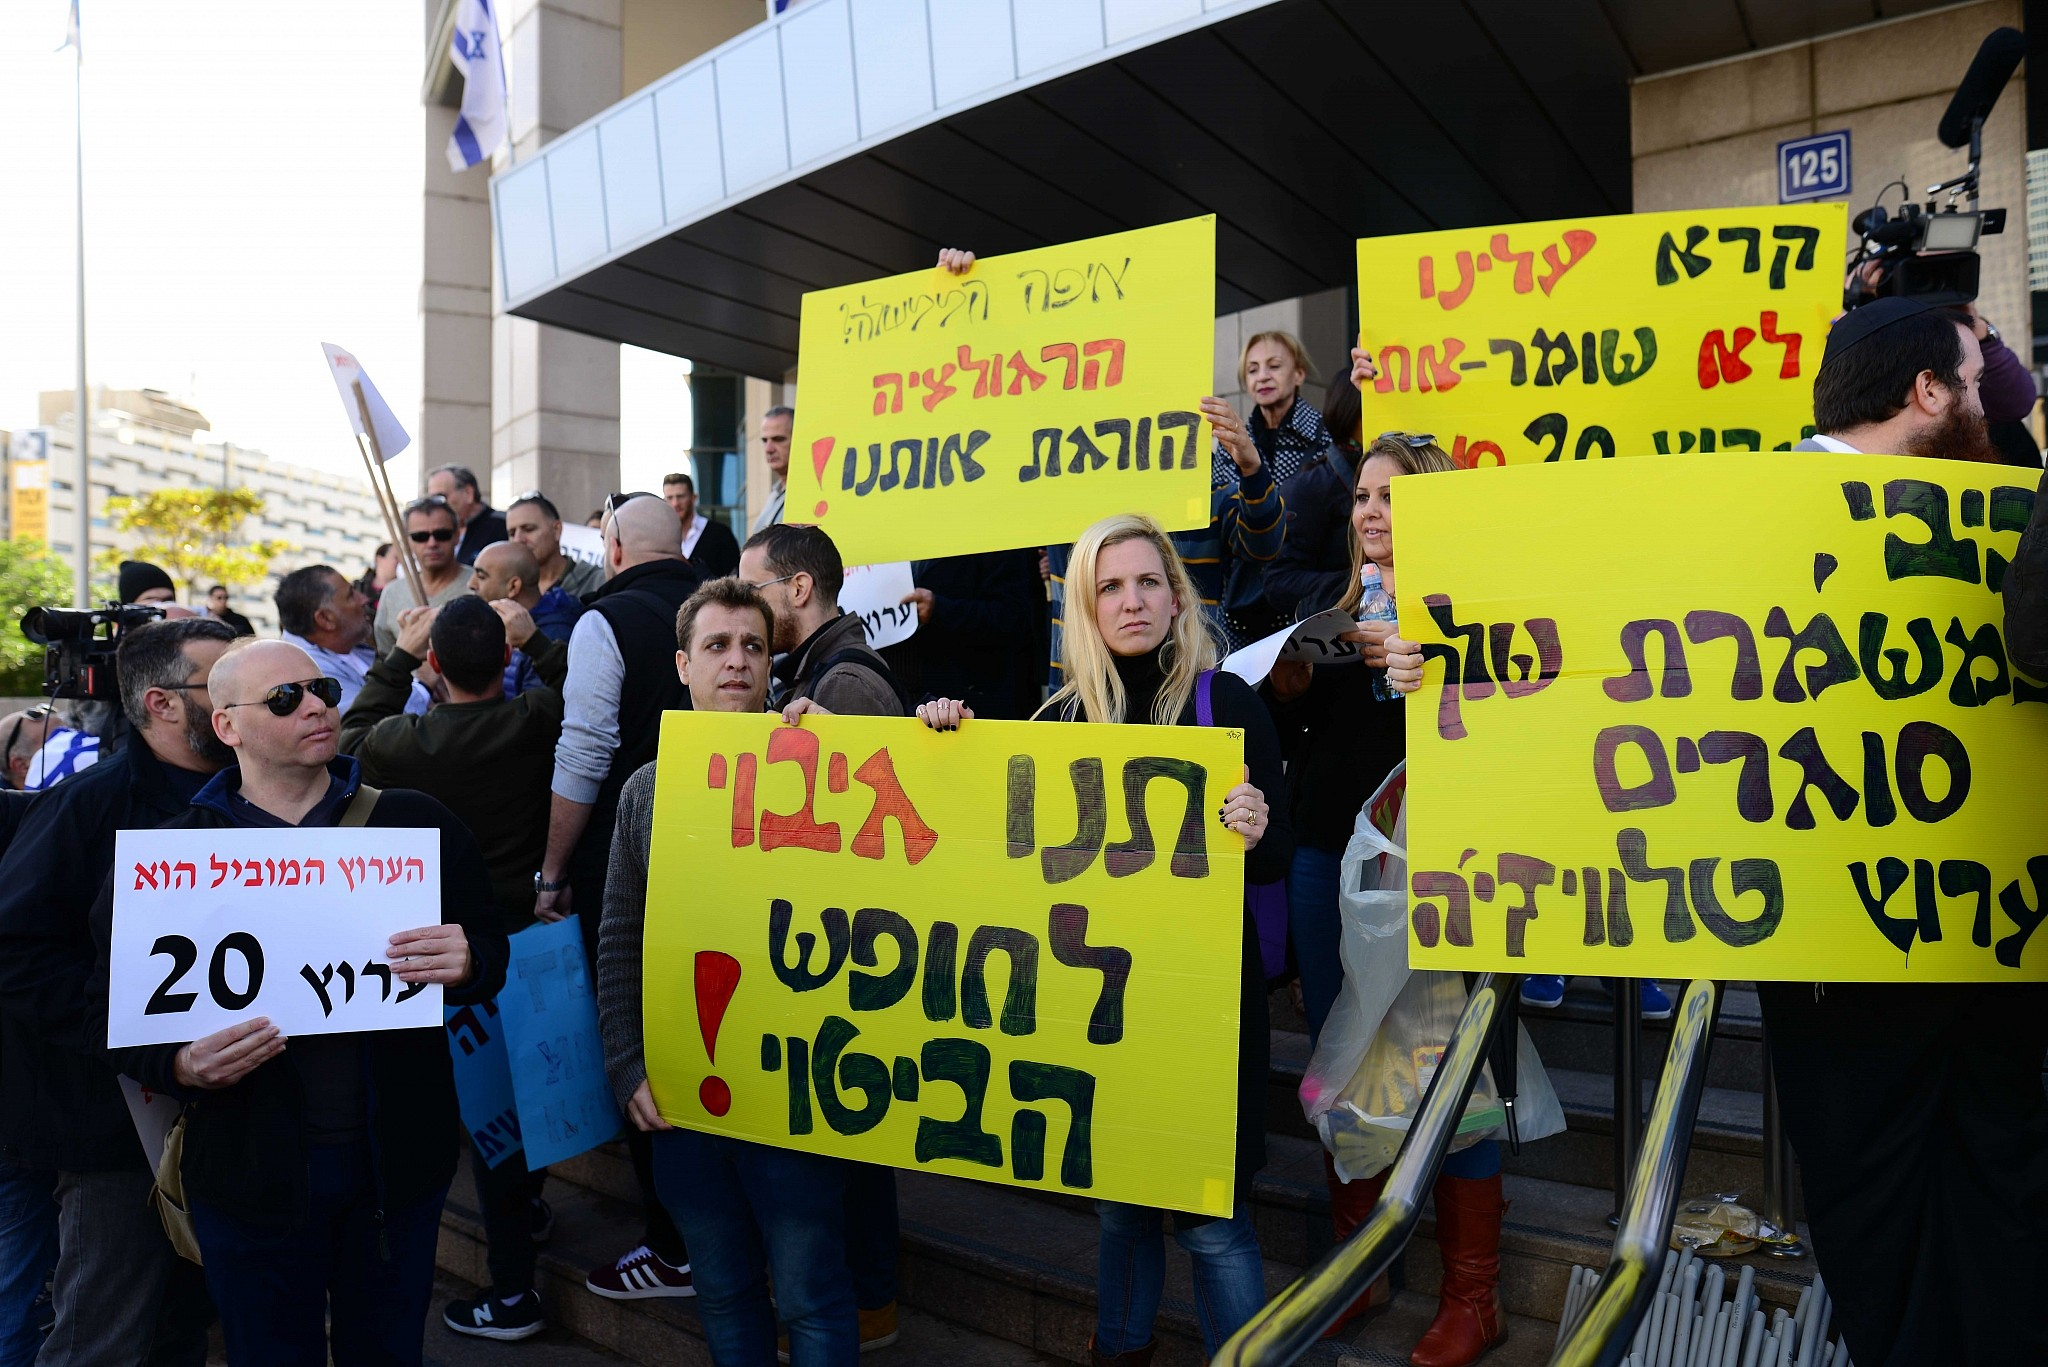 Dozens of Channel 20 workers protest over possible closure | The ...